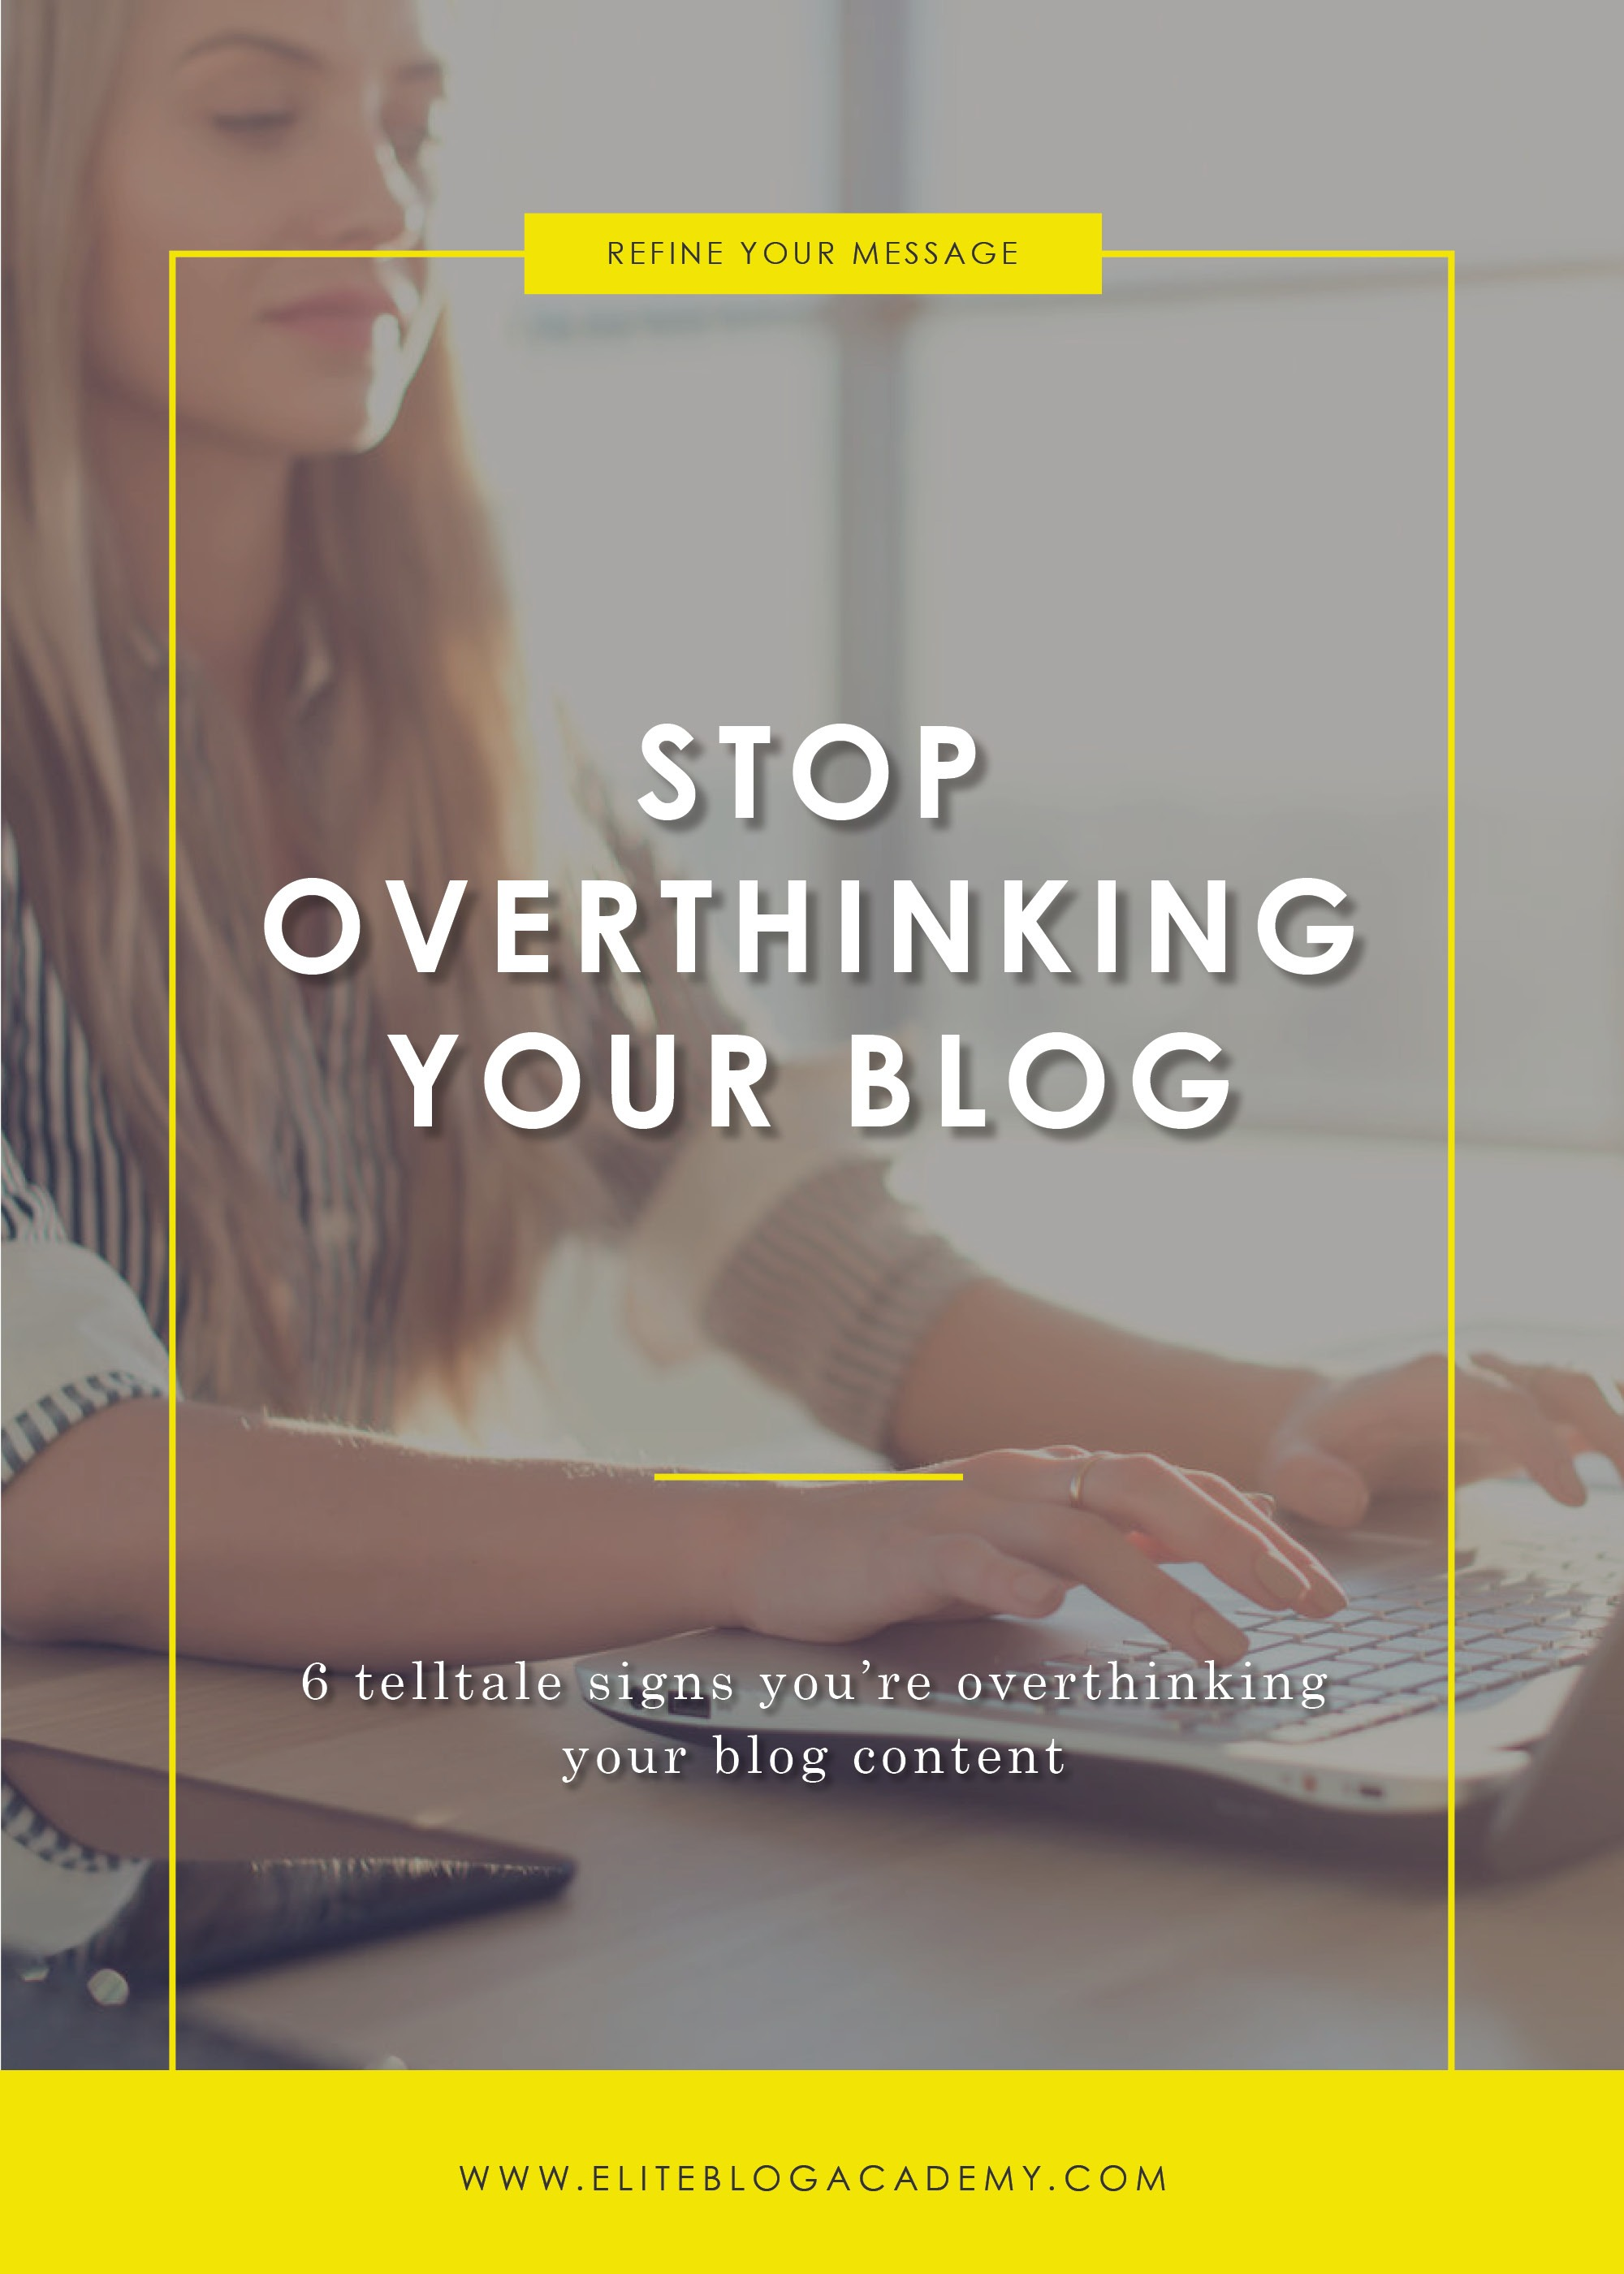 Do you suffer from overthinkitis? If you're struggling to move forward with your blog, here are six signs you might be overthinking your blog content and, more importantly, tips on how to stop overthinking and start doing today! #eliteblogacademy #overthinkitis #takeaction #doitscared